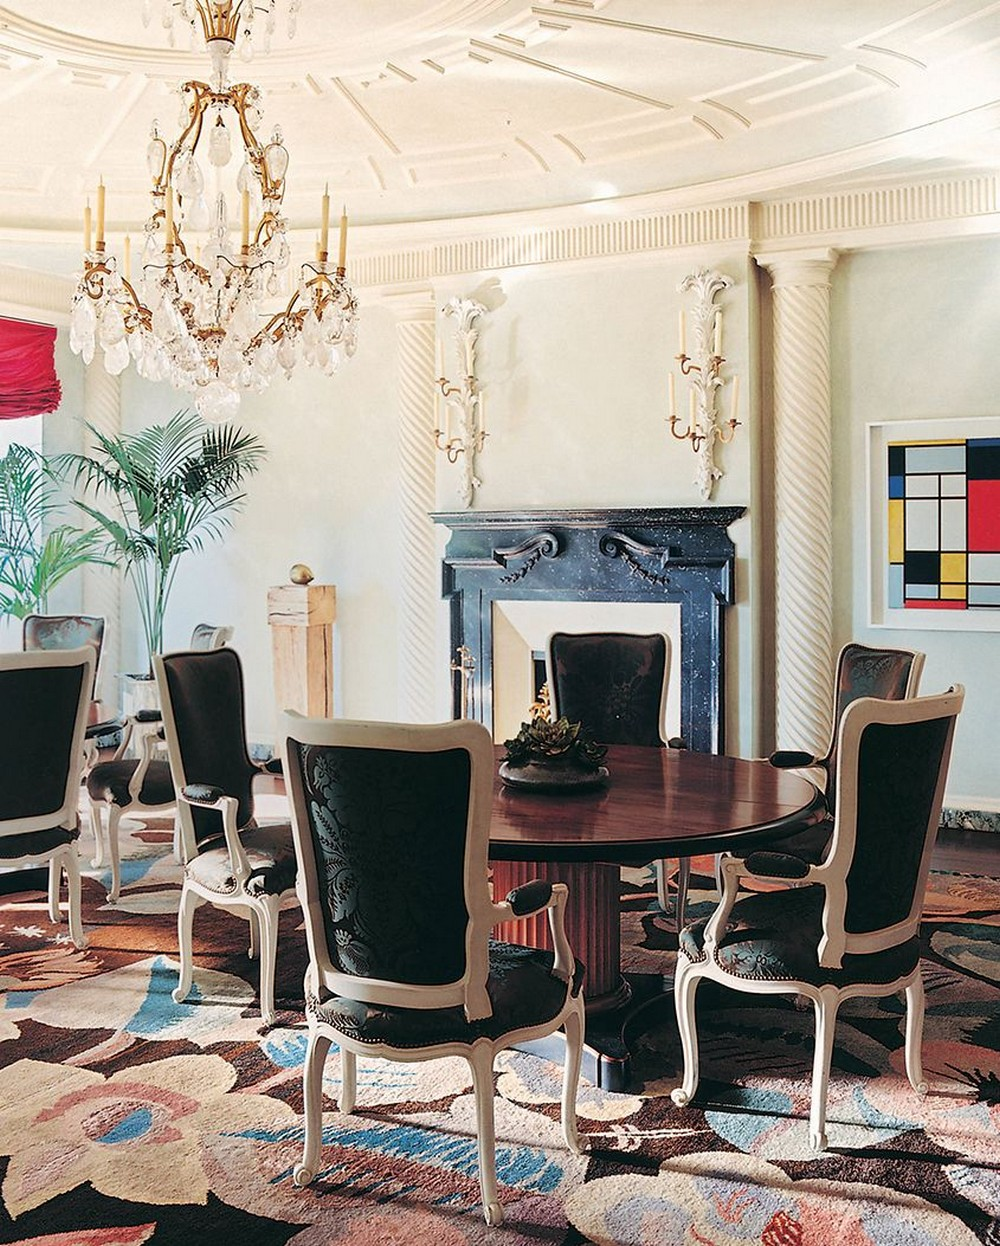 Traditional Meets Contemporary: Dining Rooms by Jacques Grange jacques grange Traditional Meets Contemporary: Dining Rooms by Jacques Grange 2 pinterest 1